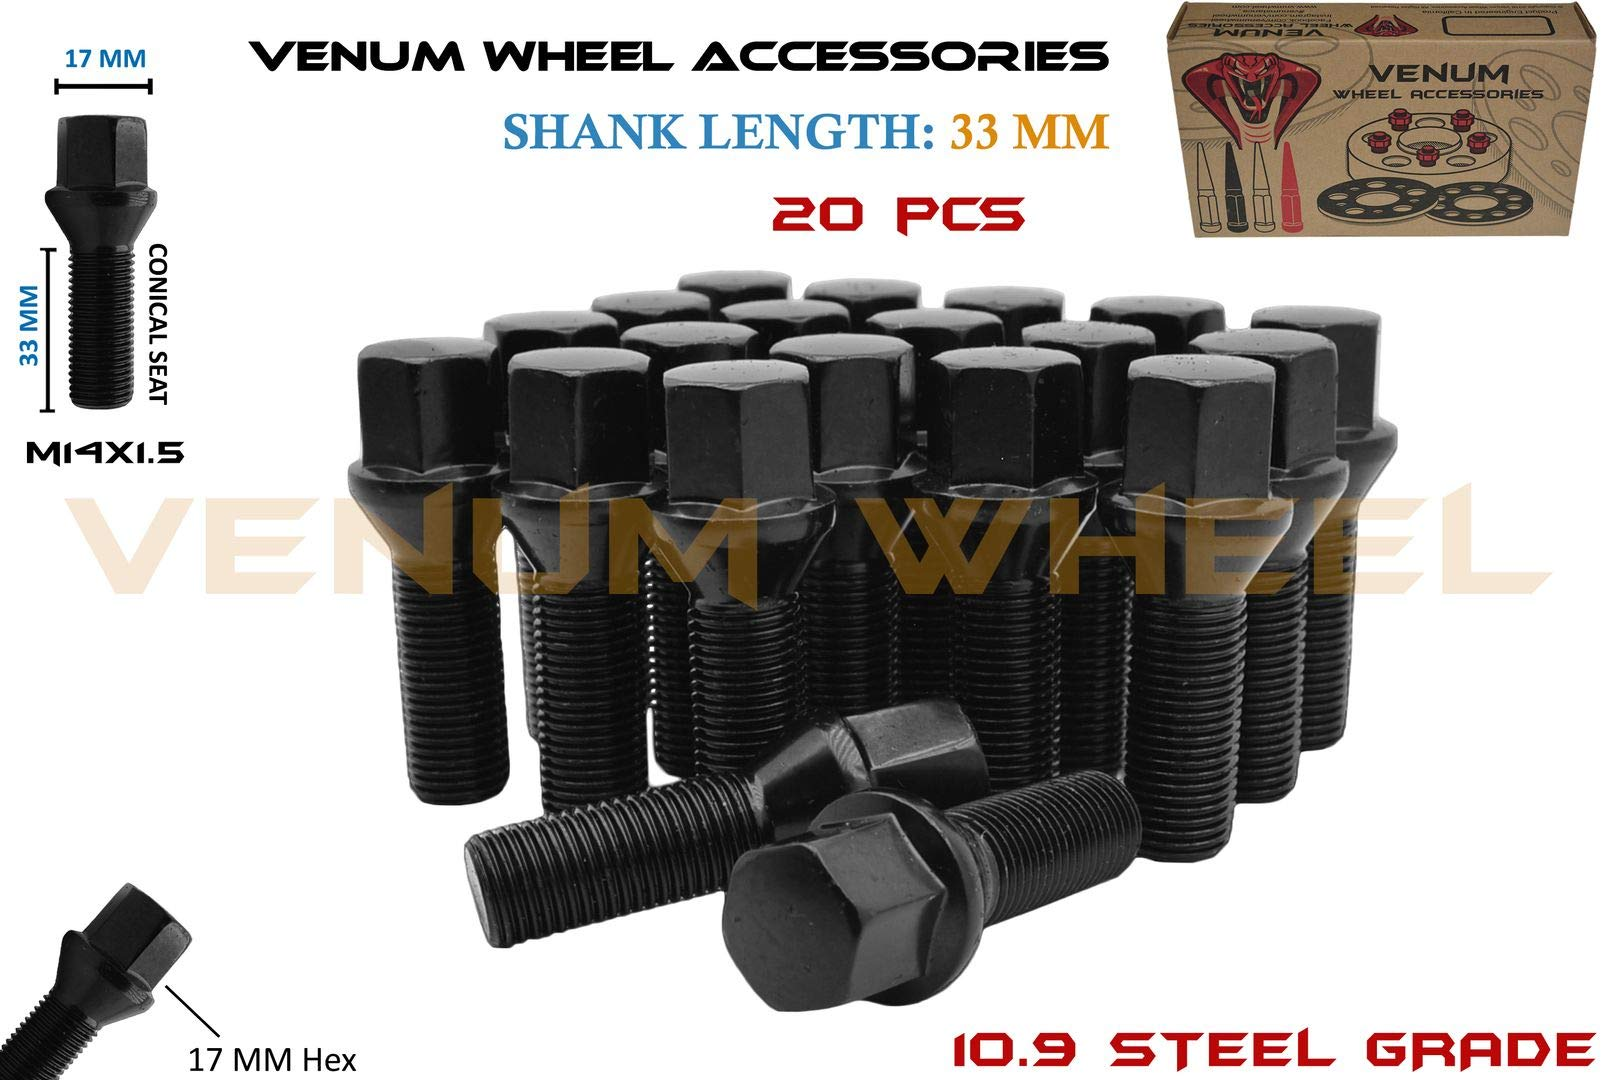 Complete Set of 20 Pc Black Powder Coated Conical Seat Lug Bolts 33 mm Extended Shank Length M14x1.5 Works With Volkswagen Audi BMW Mercedes Benz Porsche Vehicle W/ Aftermarket Wheels by Venum wheel accessories